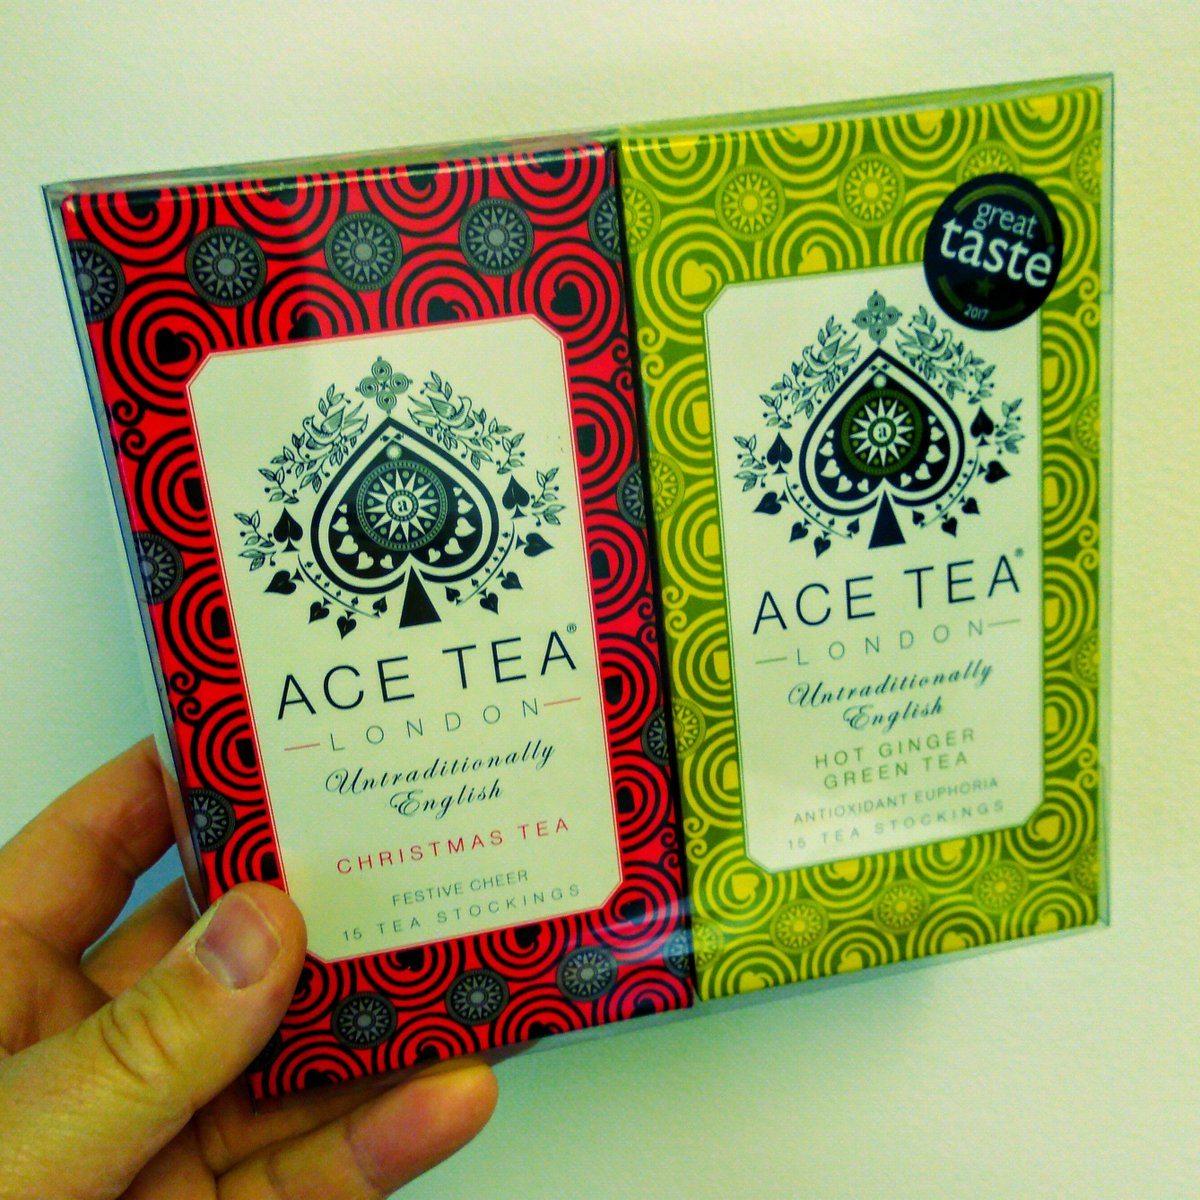 It's #freezing! Warm up & follow #AceTeaLondon tag a friend & RT for a chance to #win a #delicious Christmas & Ginger Green Tea Duo Pack. #Competition #prize  Ends: 24/11/19  #InternationalMensDay #teahour #healthy  #Christmas2019<br>http://pic.twitter.com/Lpx28OtMMf